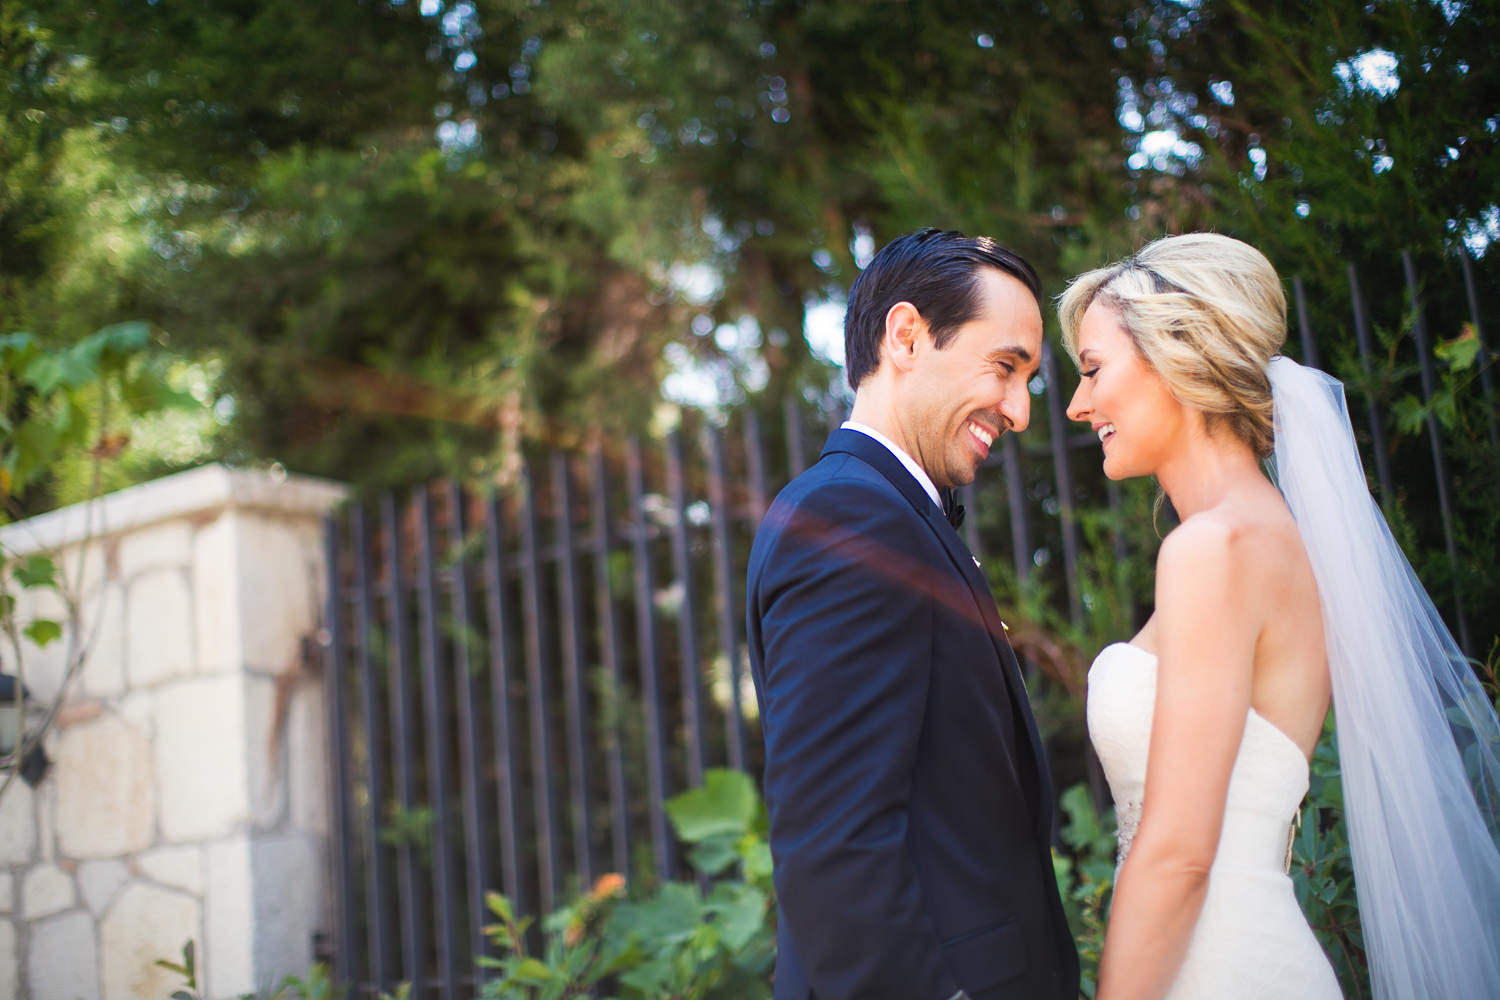 Turkey Wedding - Beautiful American Destination